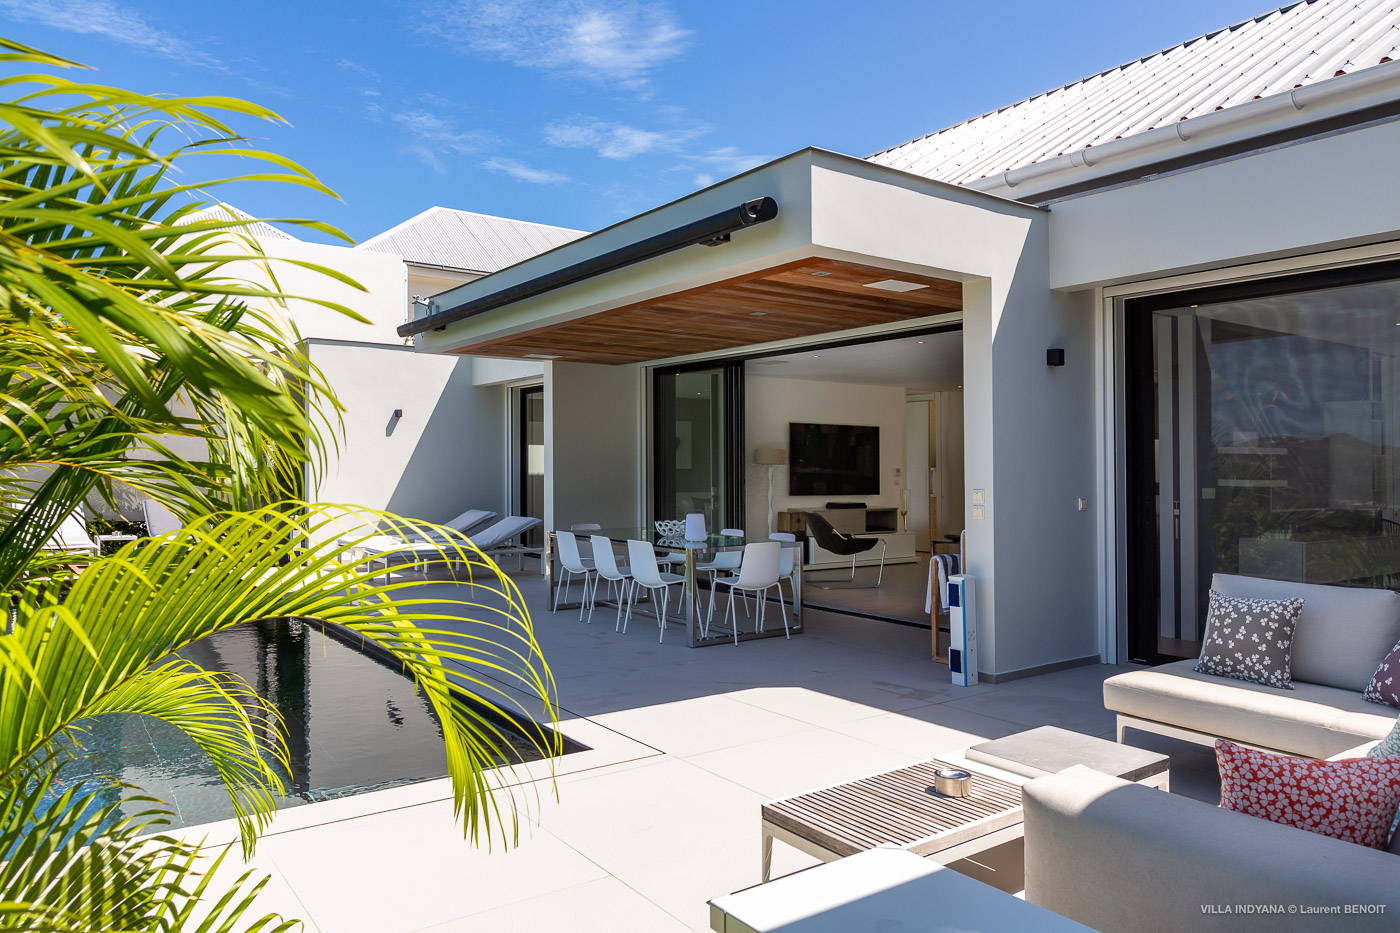 Villa Indyana - Modern and Comfortable Villa Rental St Barth with Air Conditioning and Heated Pool - Outside view